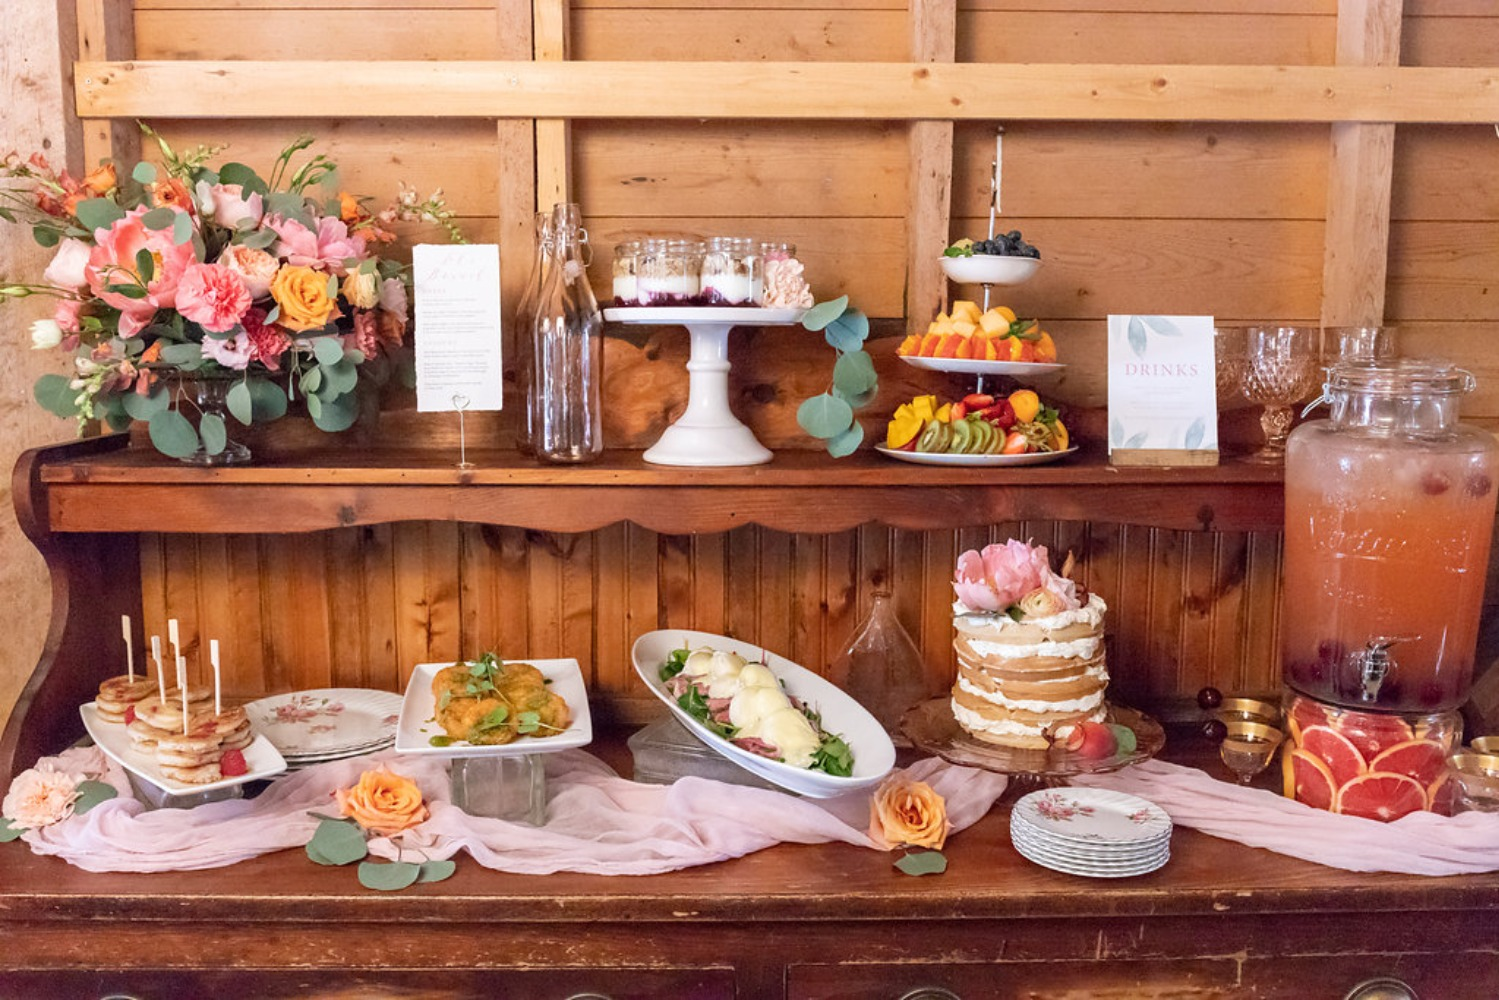 Brunch wedding spread